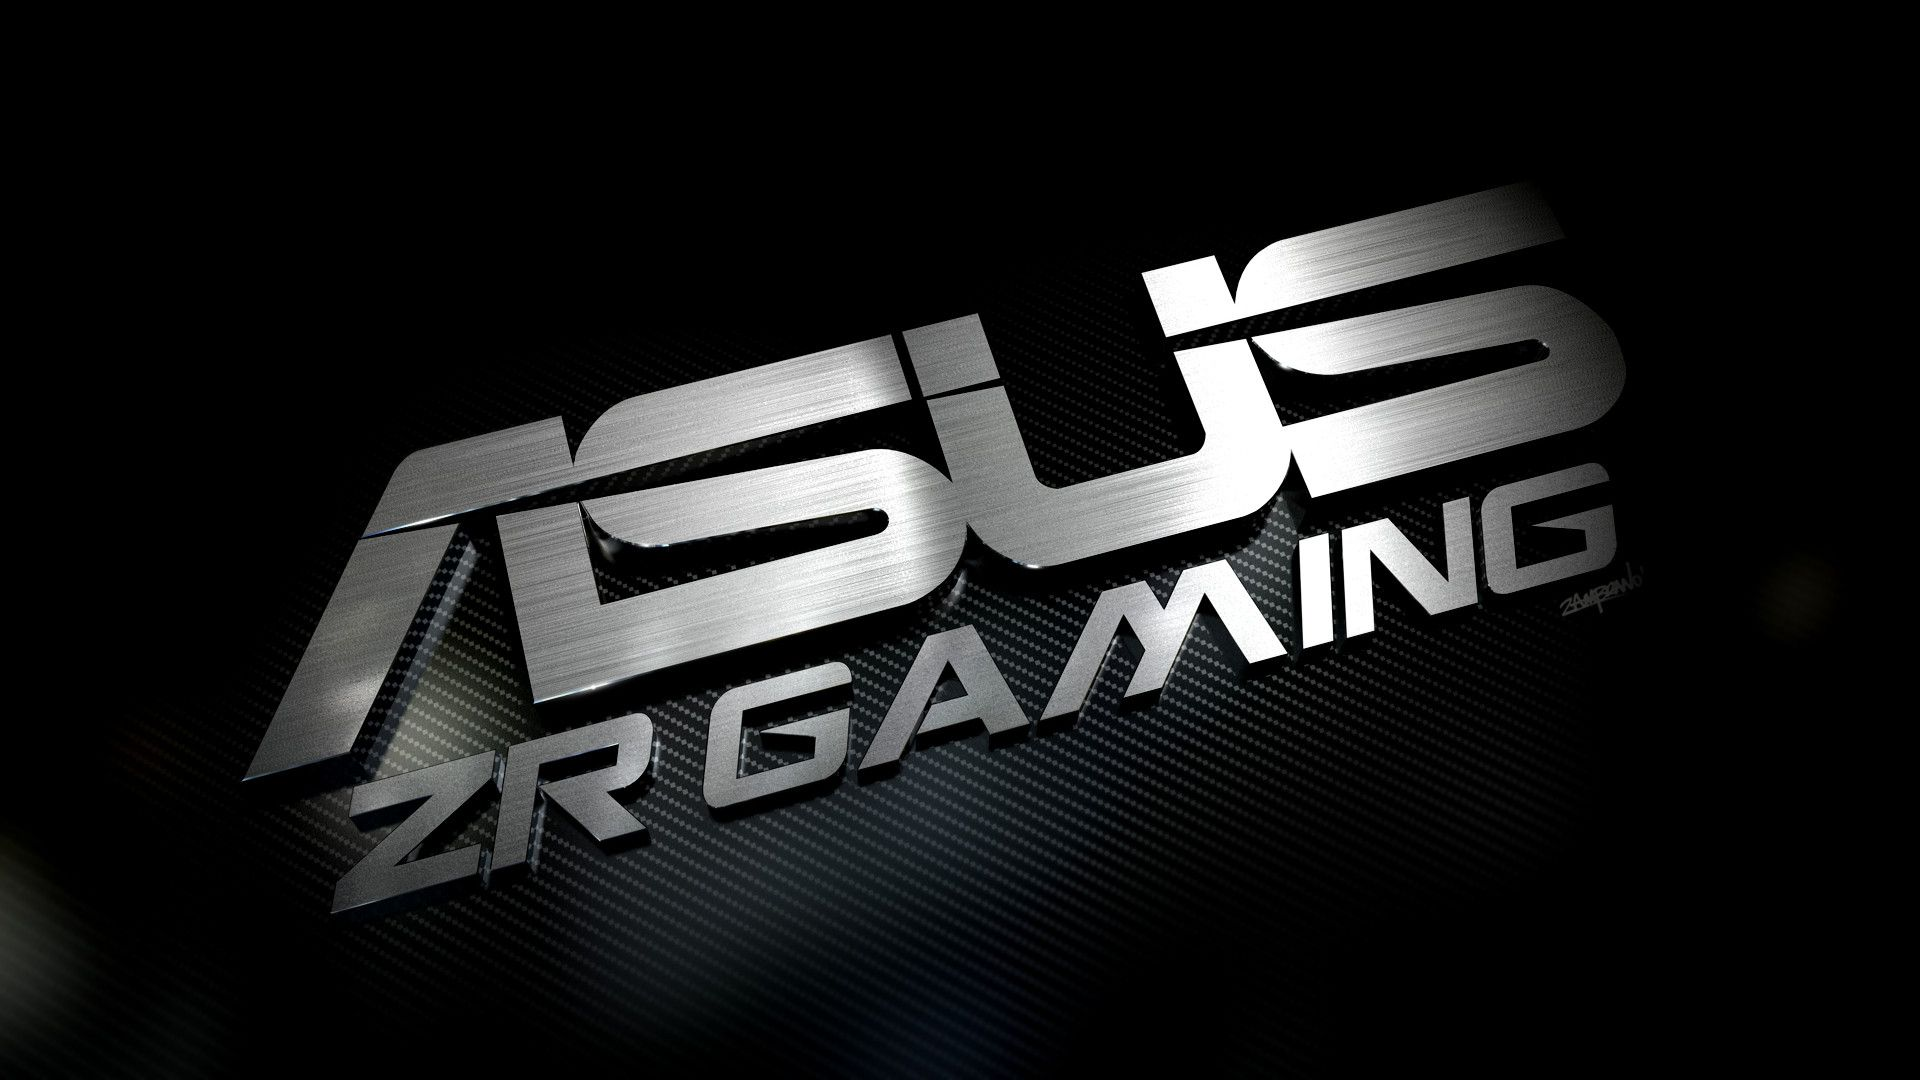 Asus Wallpaper Download